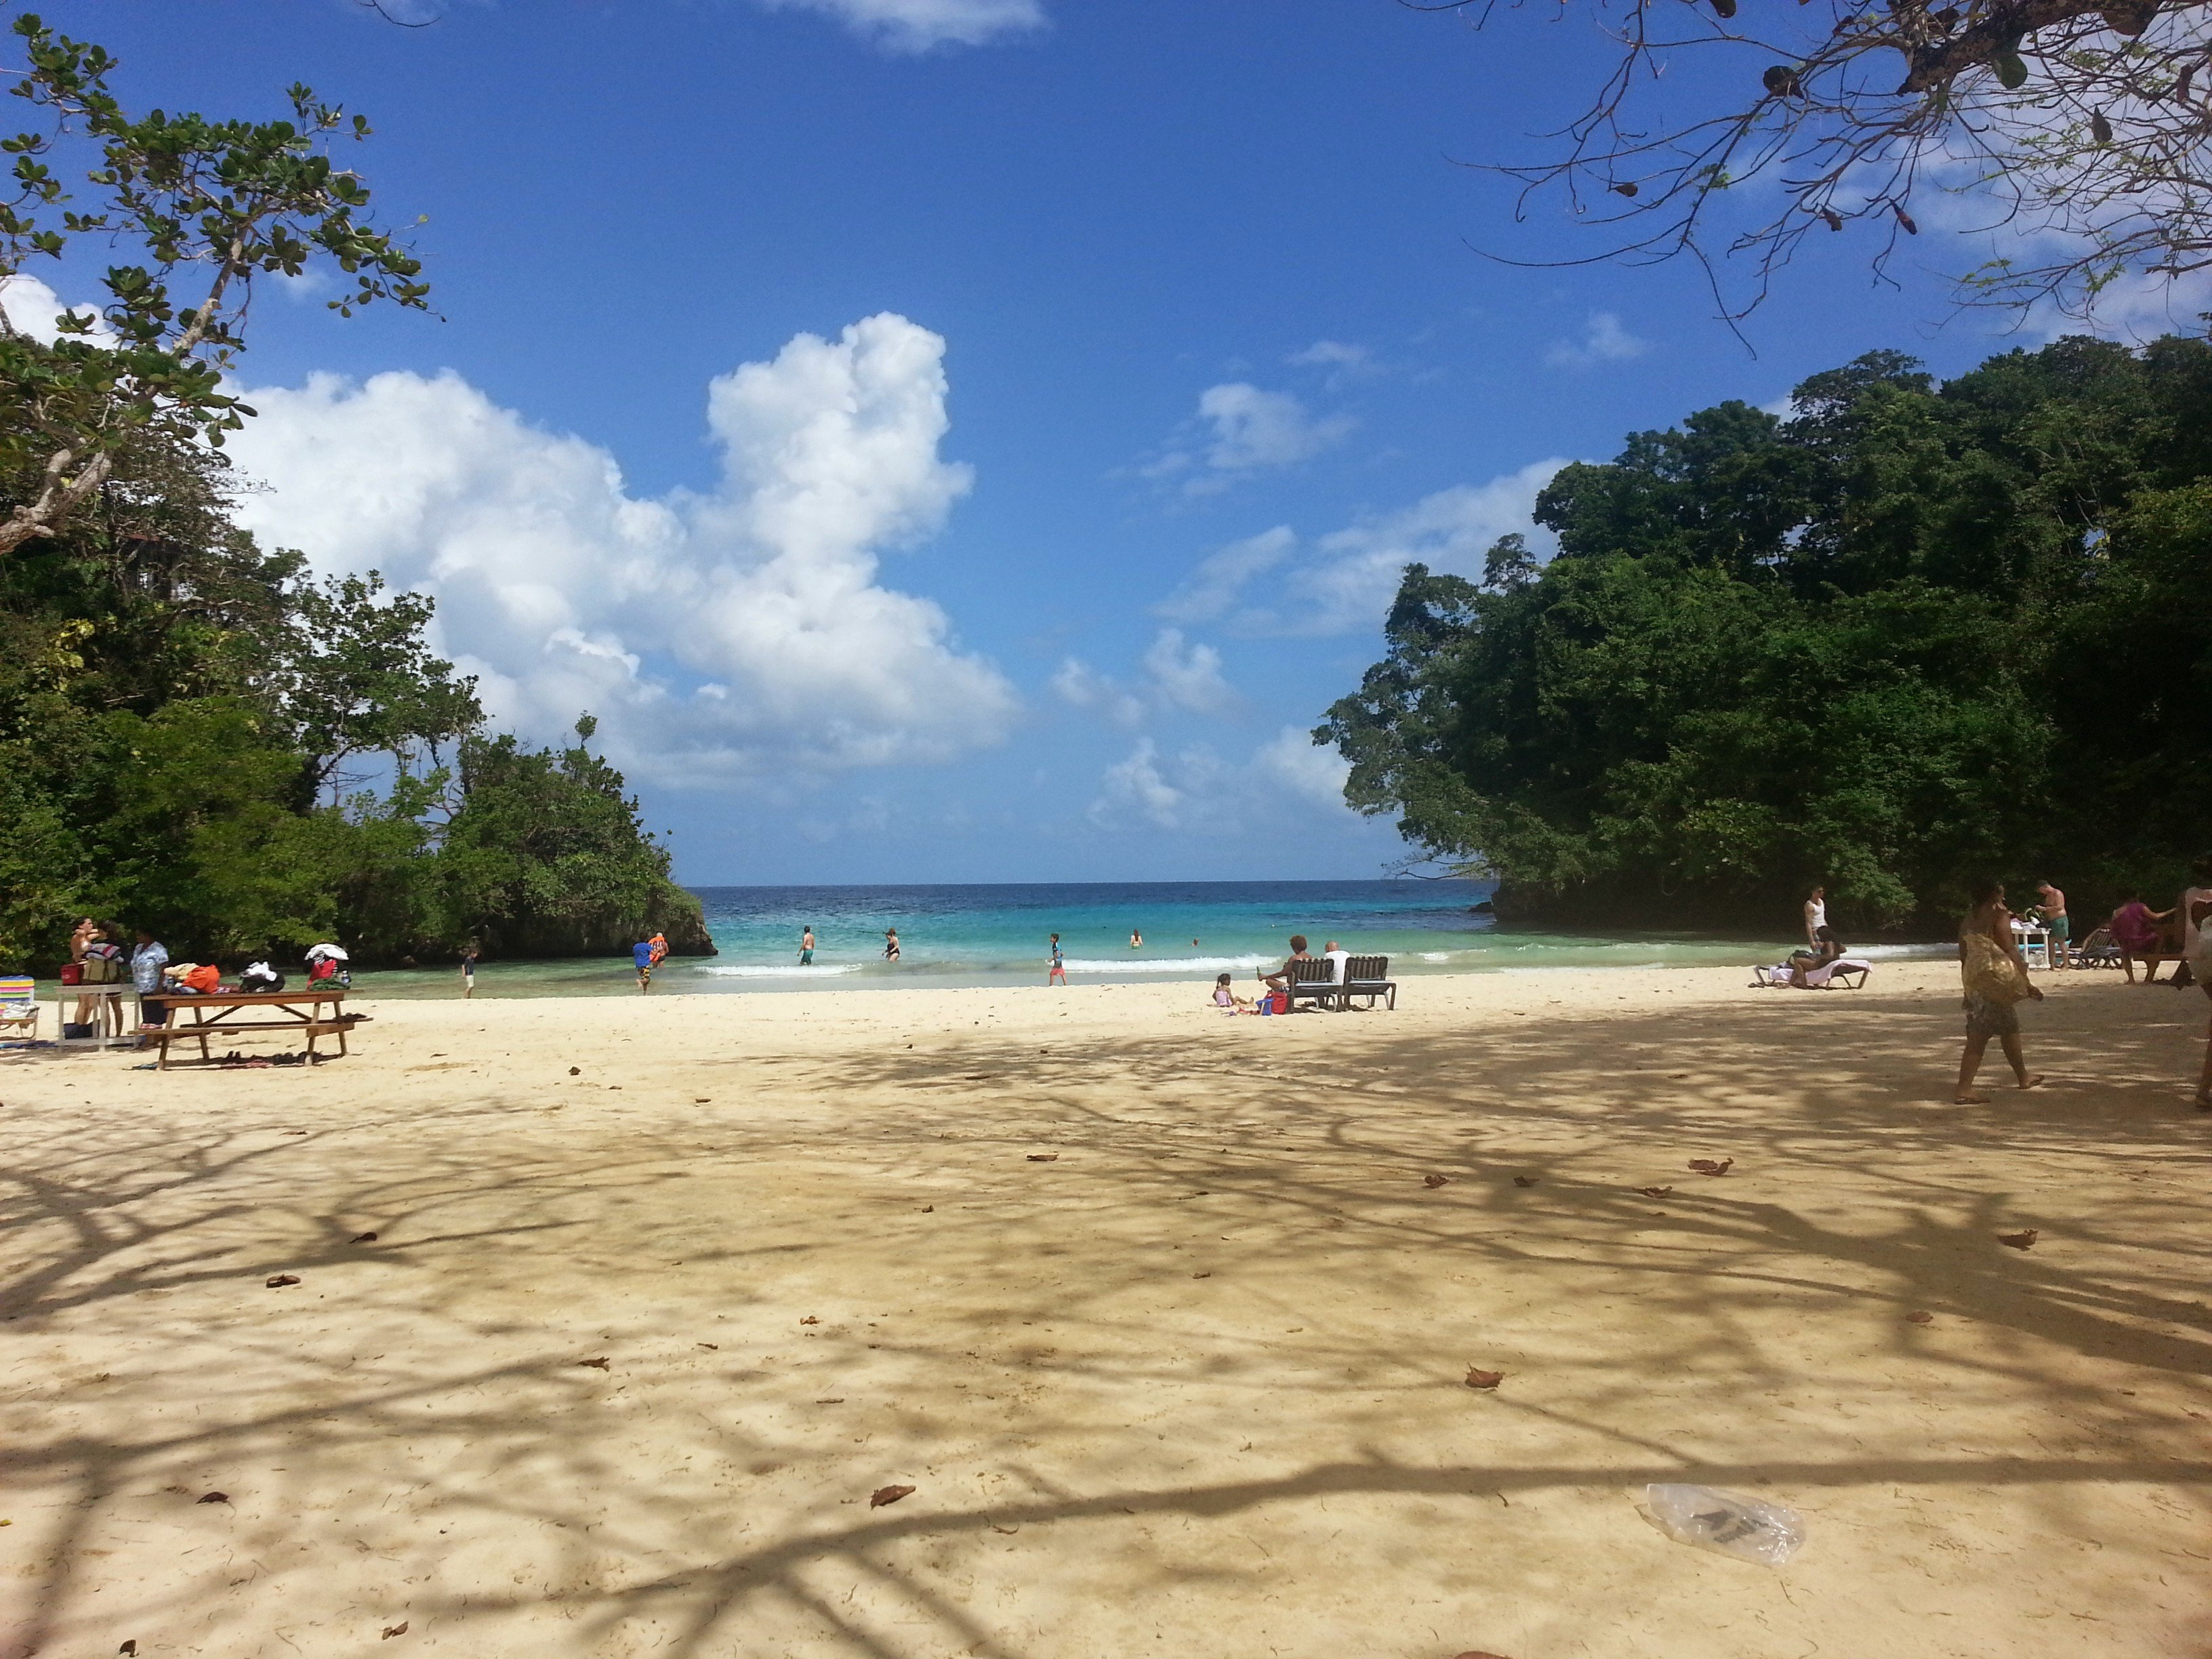 Frenchman's Cove Jamaica: The Most Beautiful Beach You've Seen